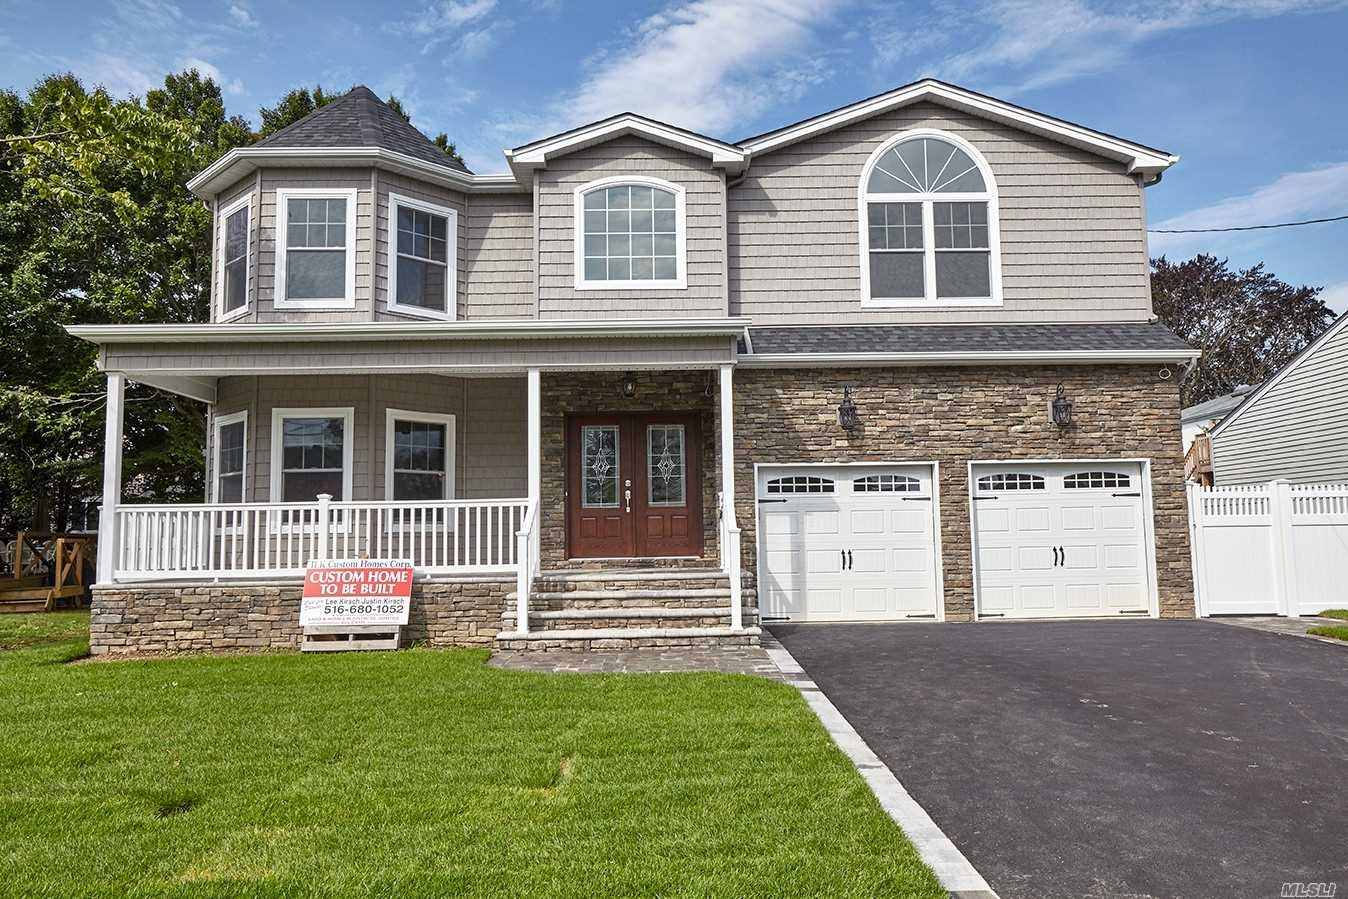 Brand new custom colonial. Act now to customize to your own design! 3600 square feet of open floor plan plus a full basement, cellar entrance, and porch. Designed and finished with expert help from the builder throughout the process. Amenities include: custom kitchen and bathroom vanities, Pella windows, intricate trim work and wainscotting, 2.5 baths, 2nd floor laundry room with sink, and master suite with two walk in closets and whirlpool tub in master bath.